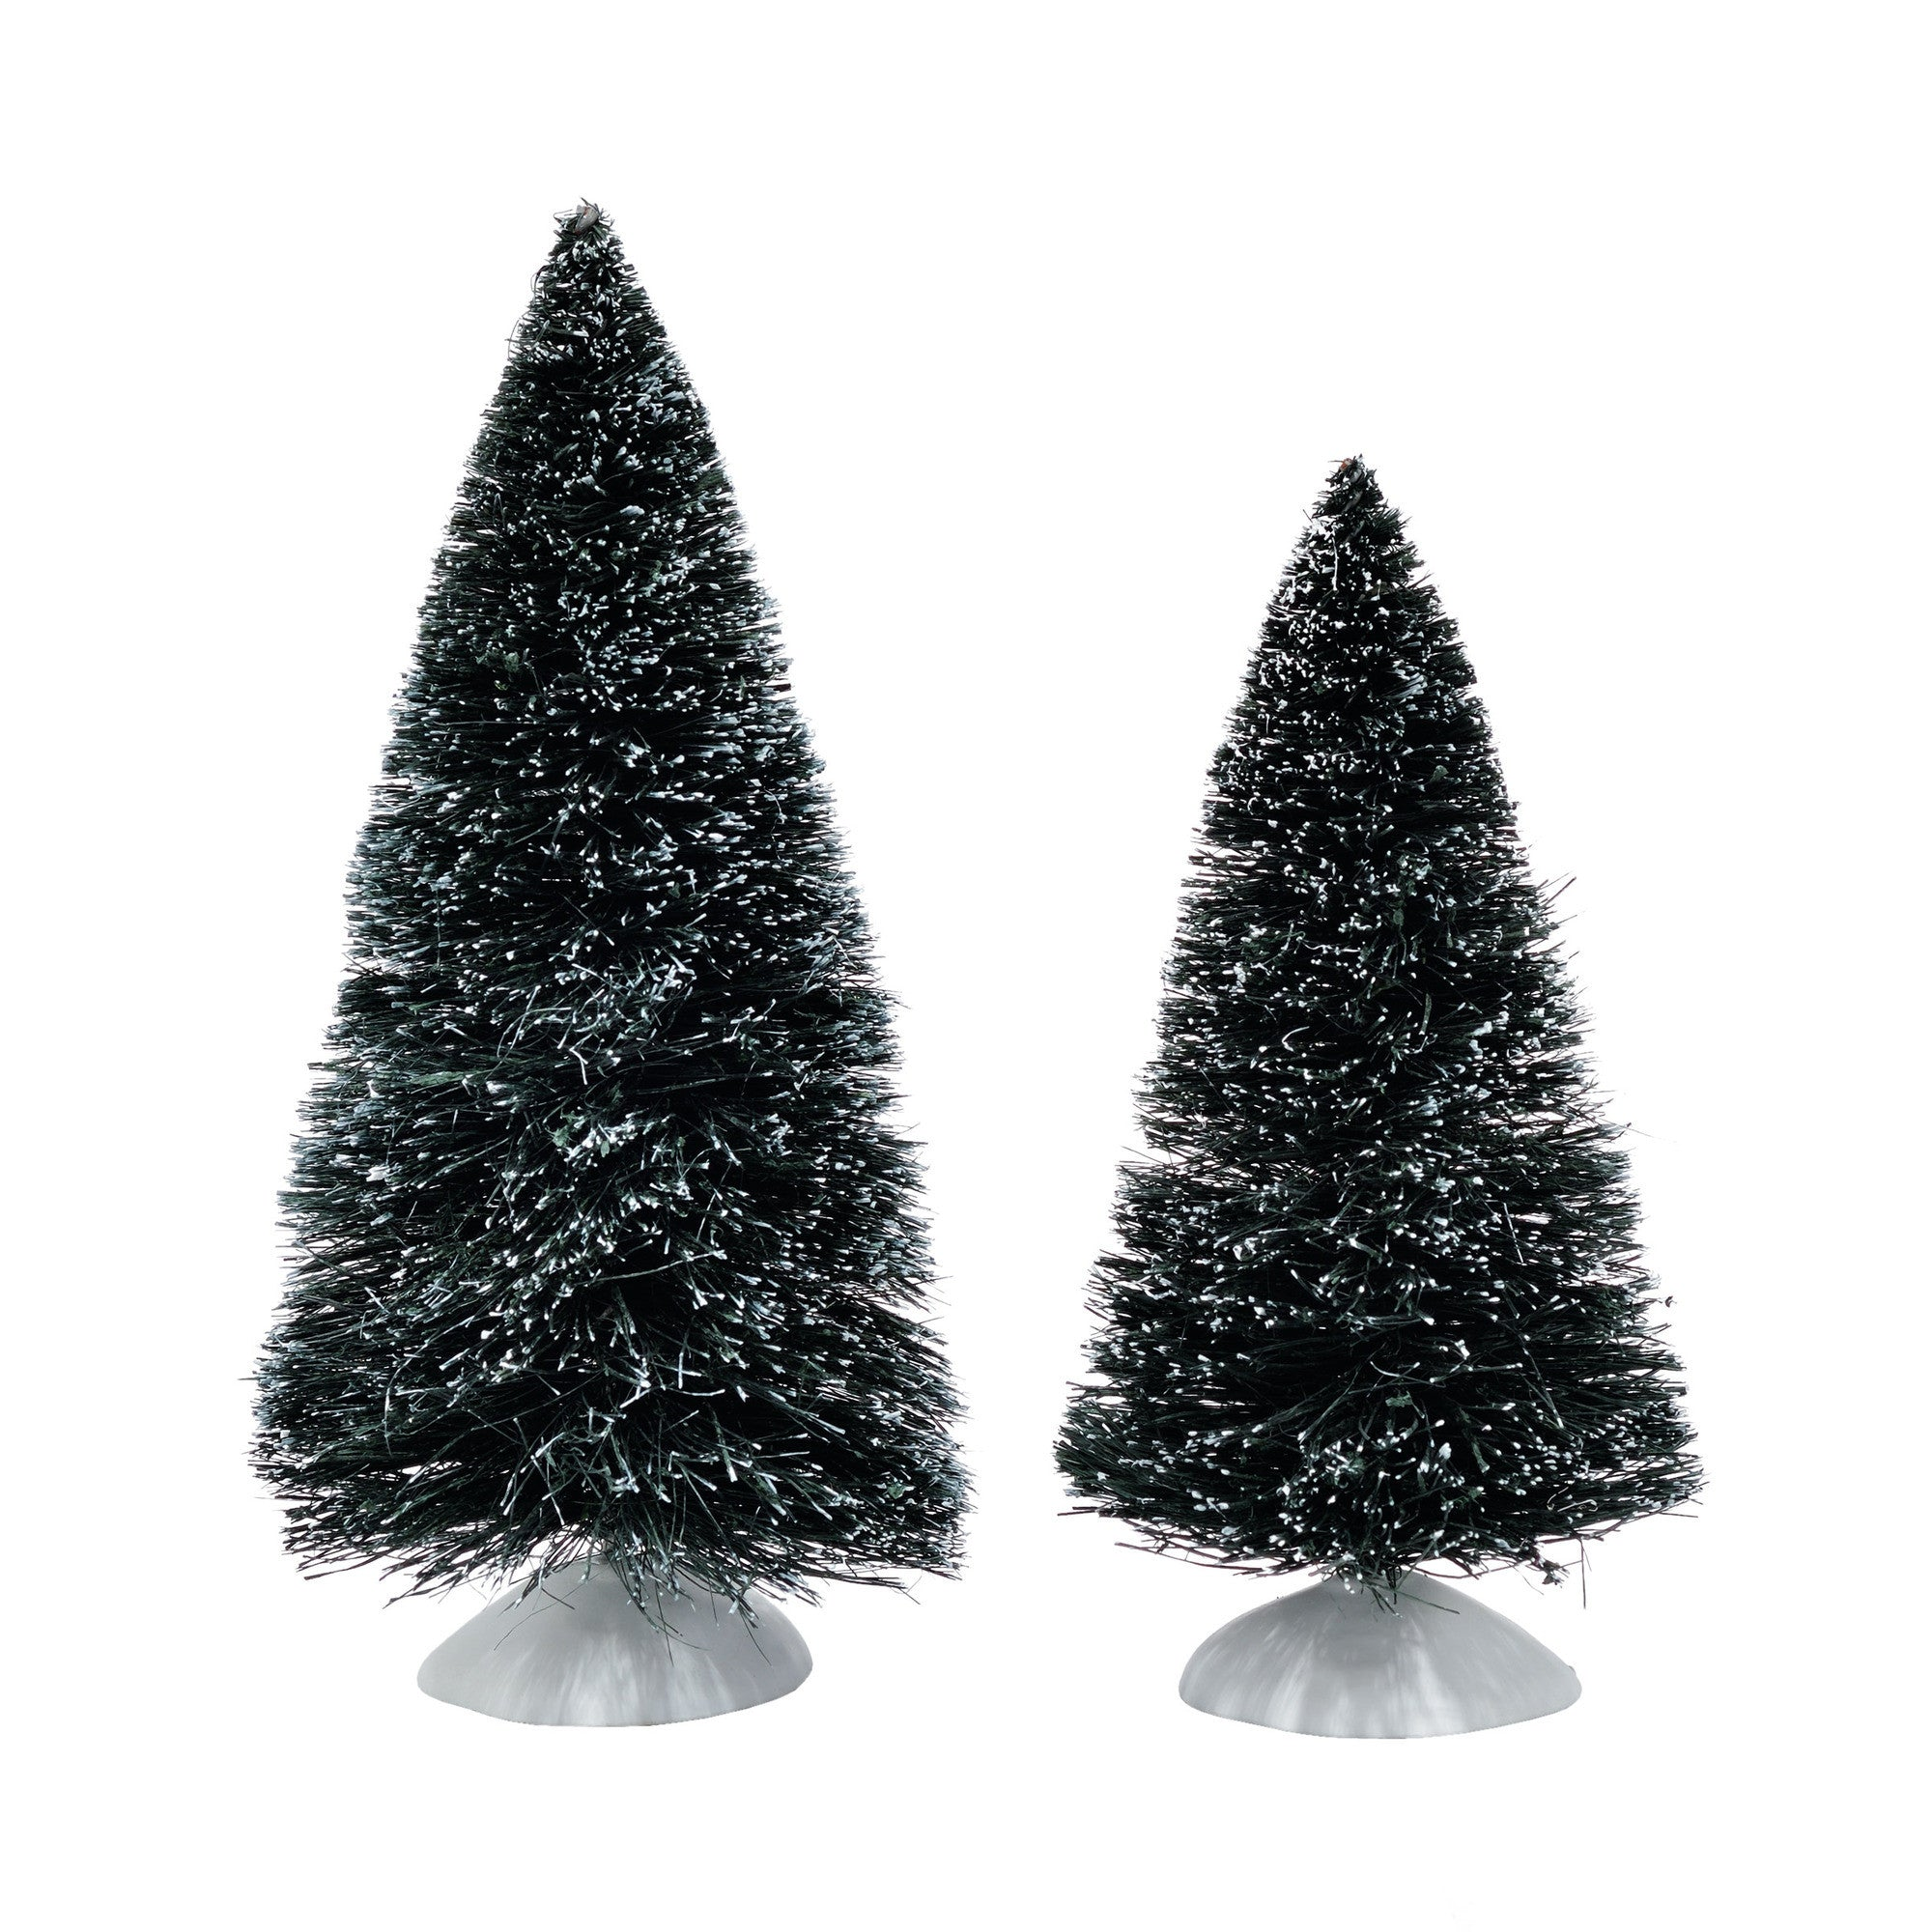 Village Accessory: Bag-O-Frosted Topiaries, Medium, Set of 2